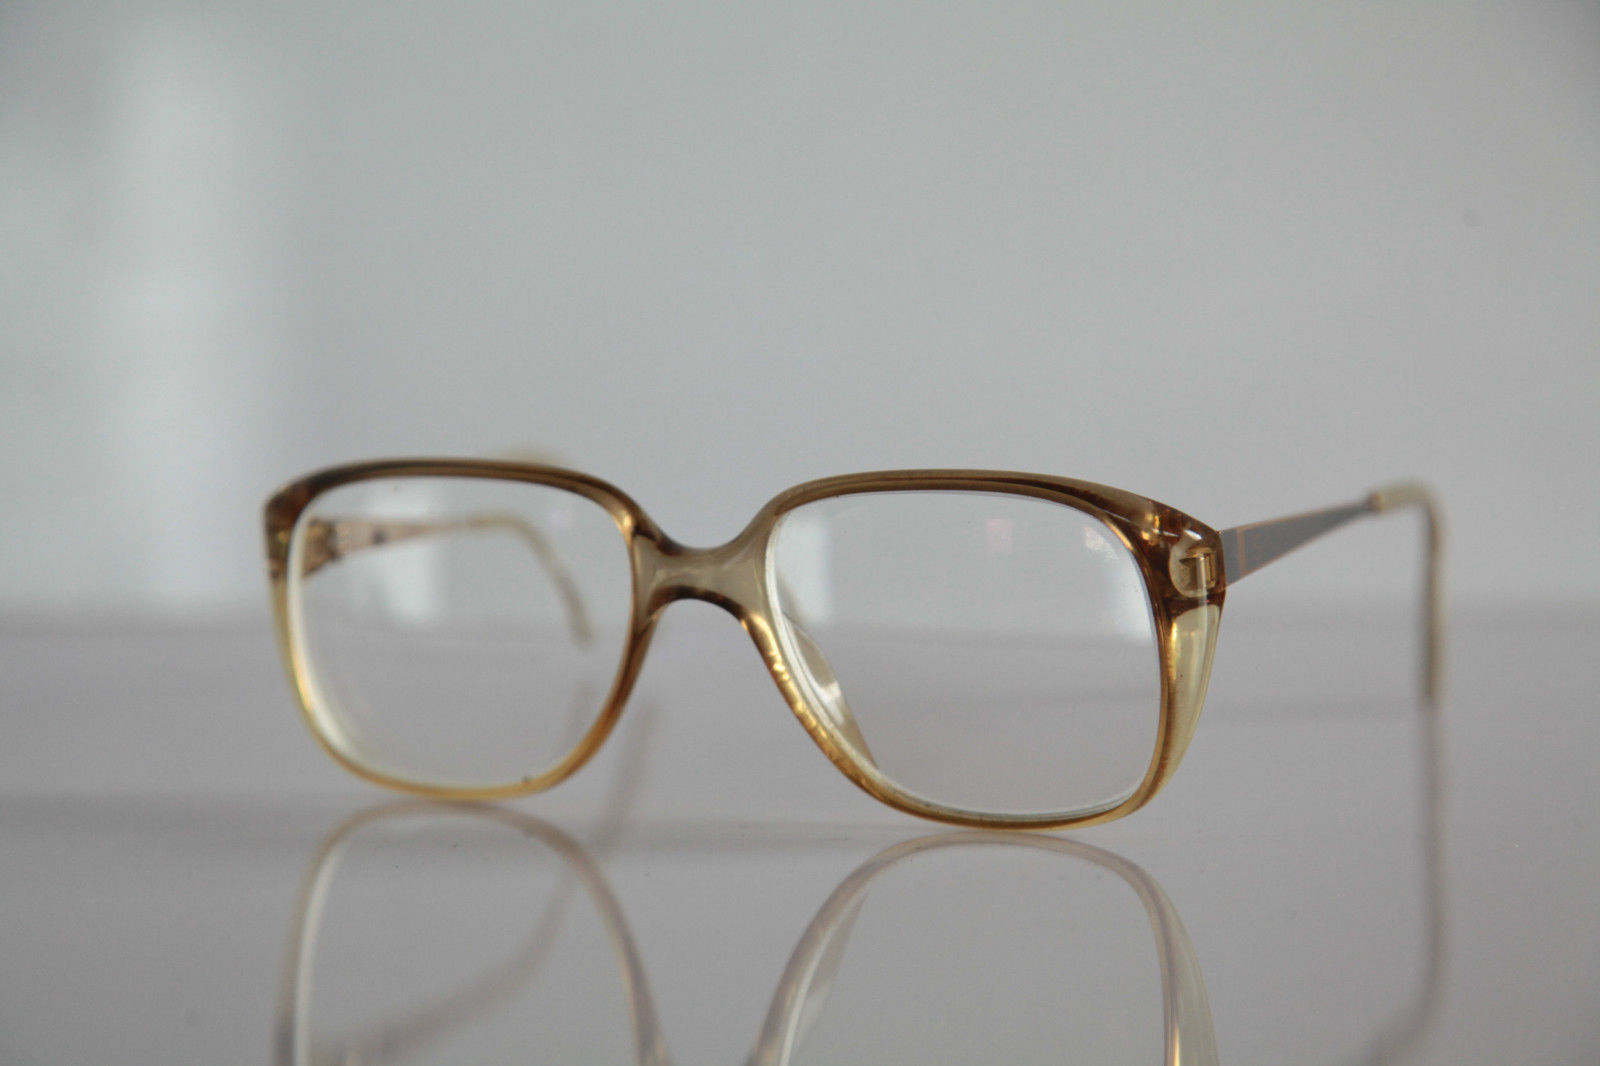 Vintage ZEISS Eyewear, Crystal Gold Frame,  RX-Able Prescription lens. Germany